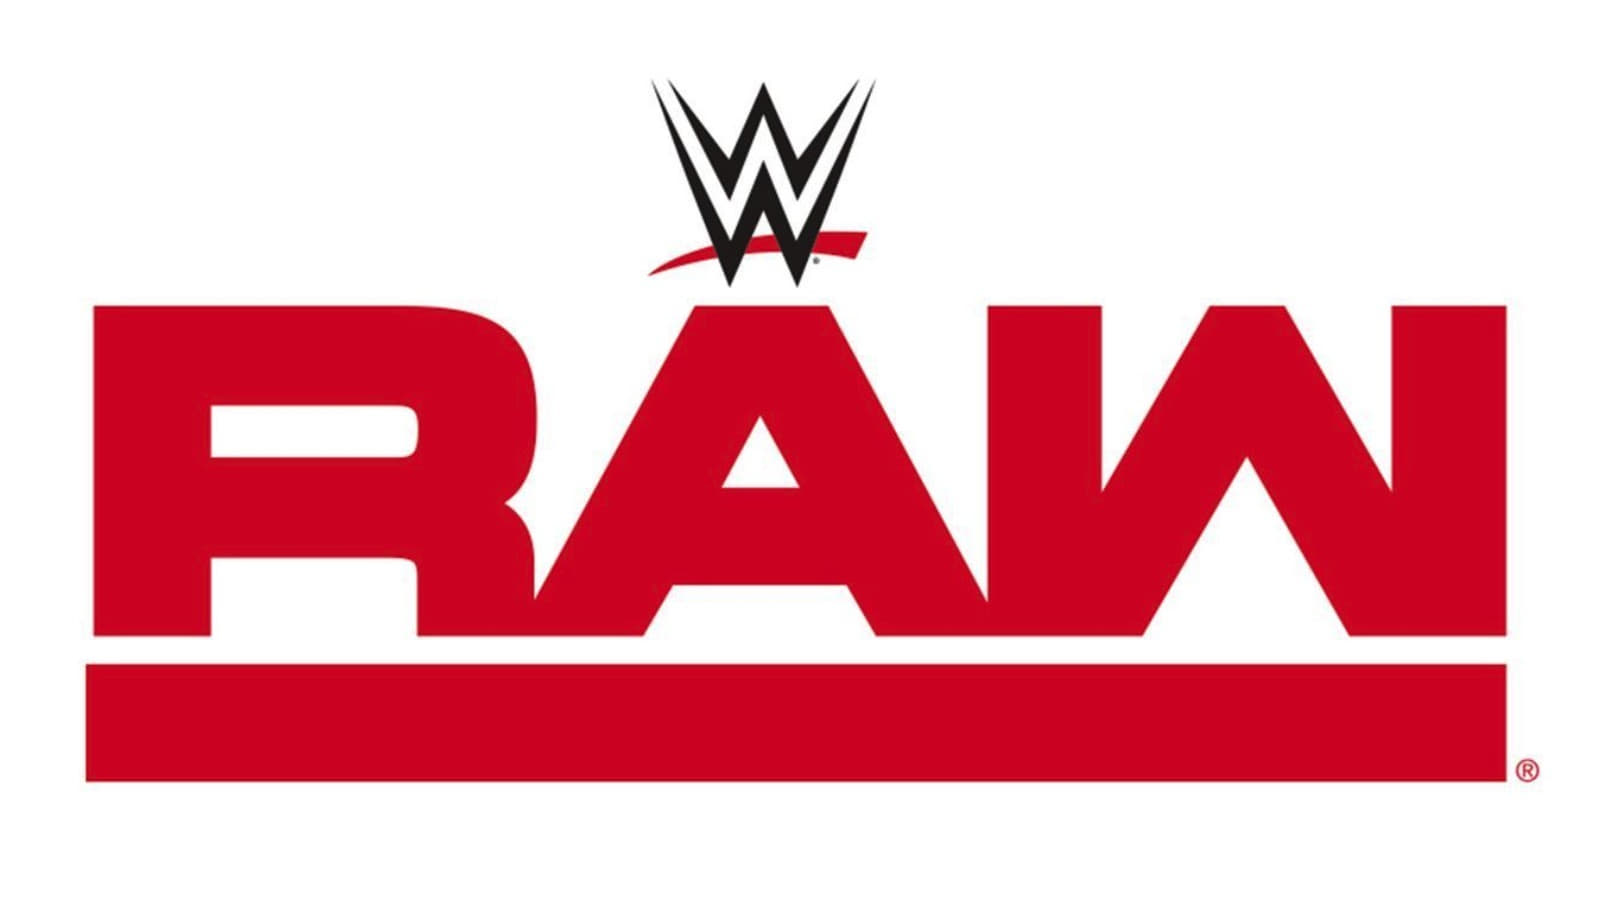 WWE Raw - Season 22 Episode 26 : June 30, 2014 (Hartford, CT)